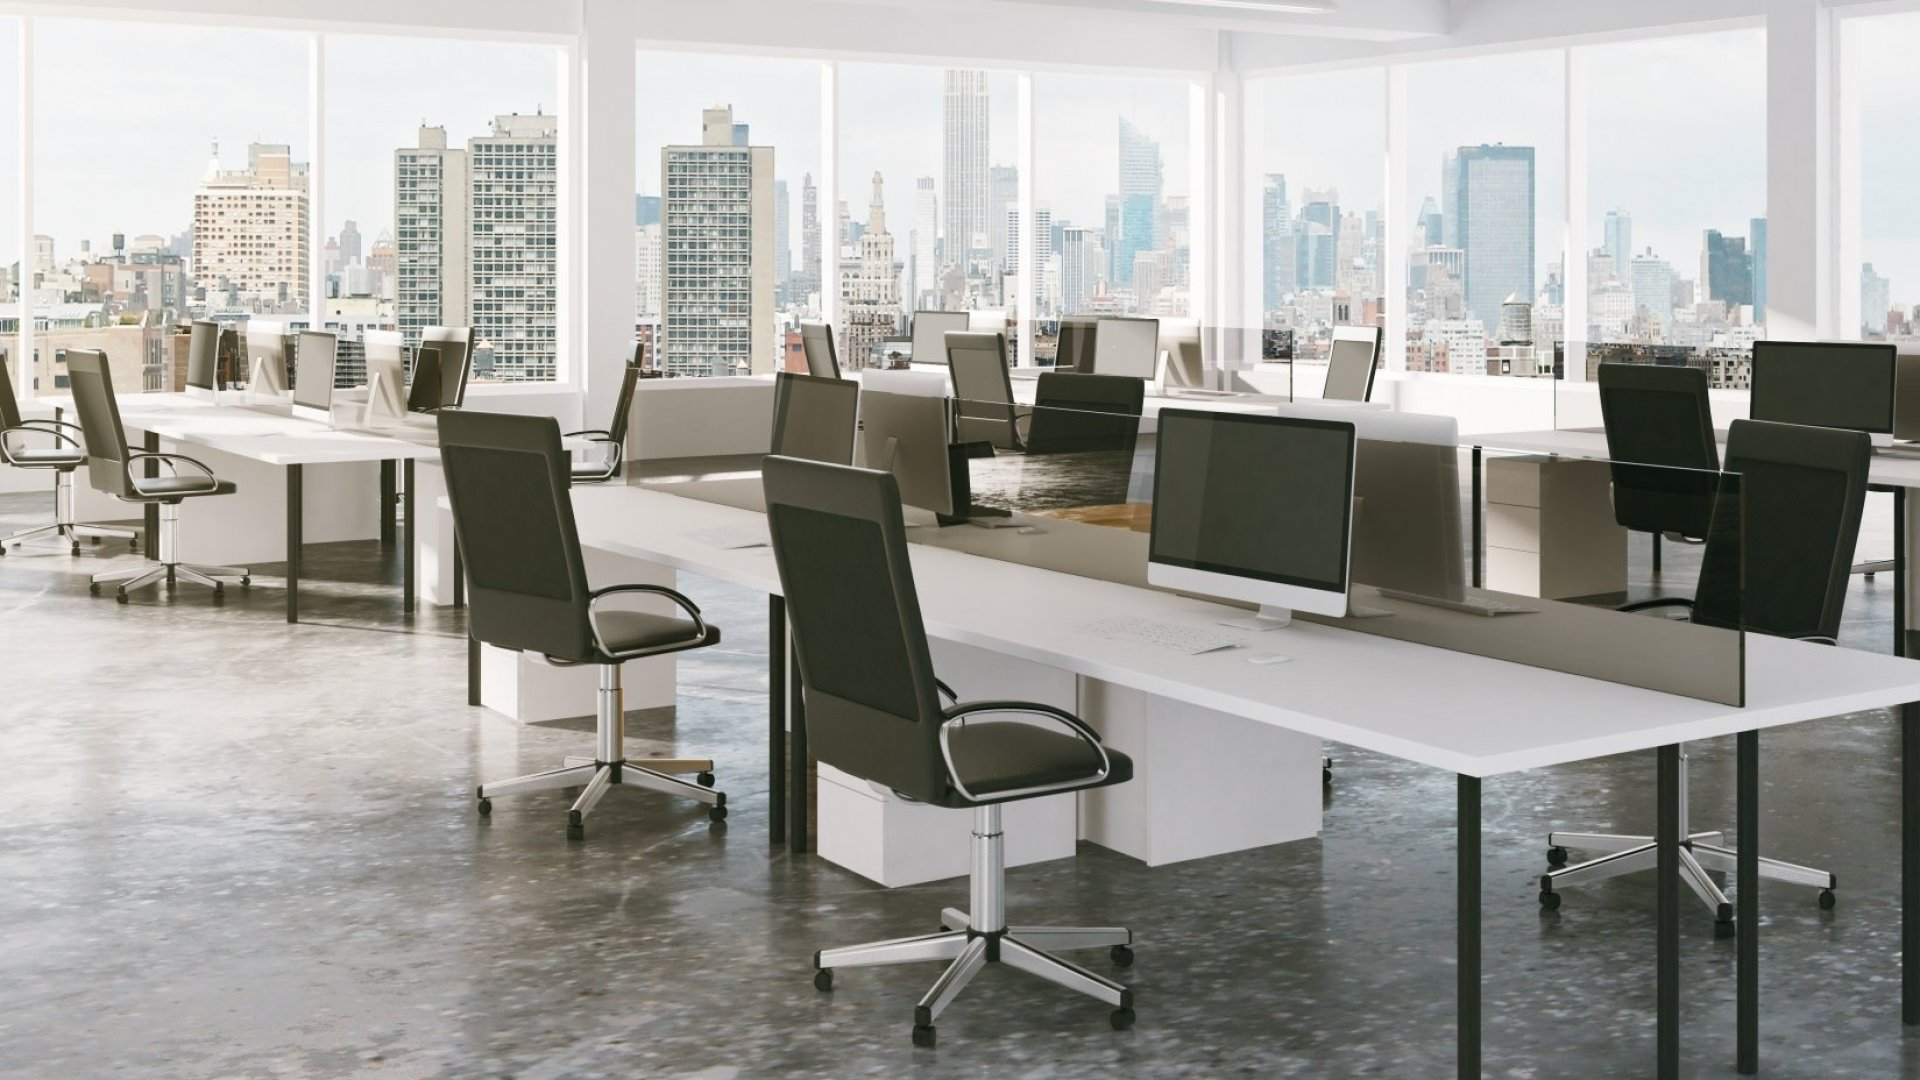 Open-Plan Offices Are the Worst Management Fad Ever. But They Can Provide 1 Very Clear Benefit: Natural Light